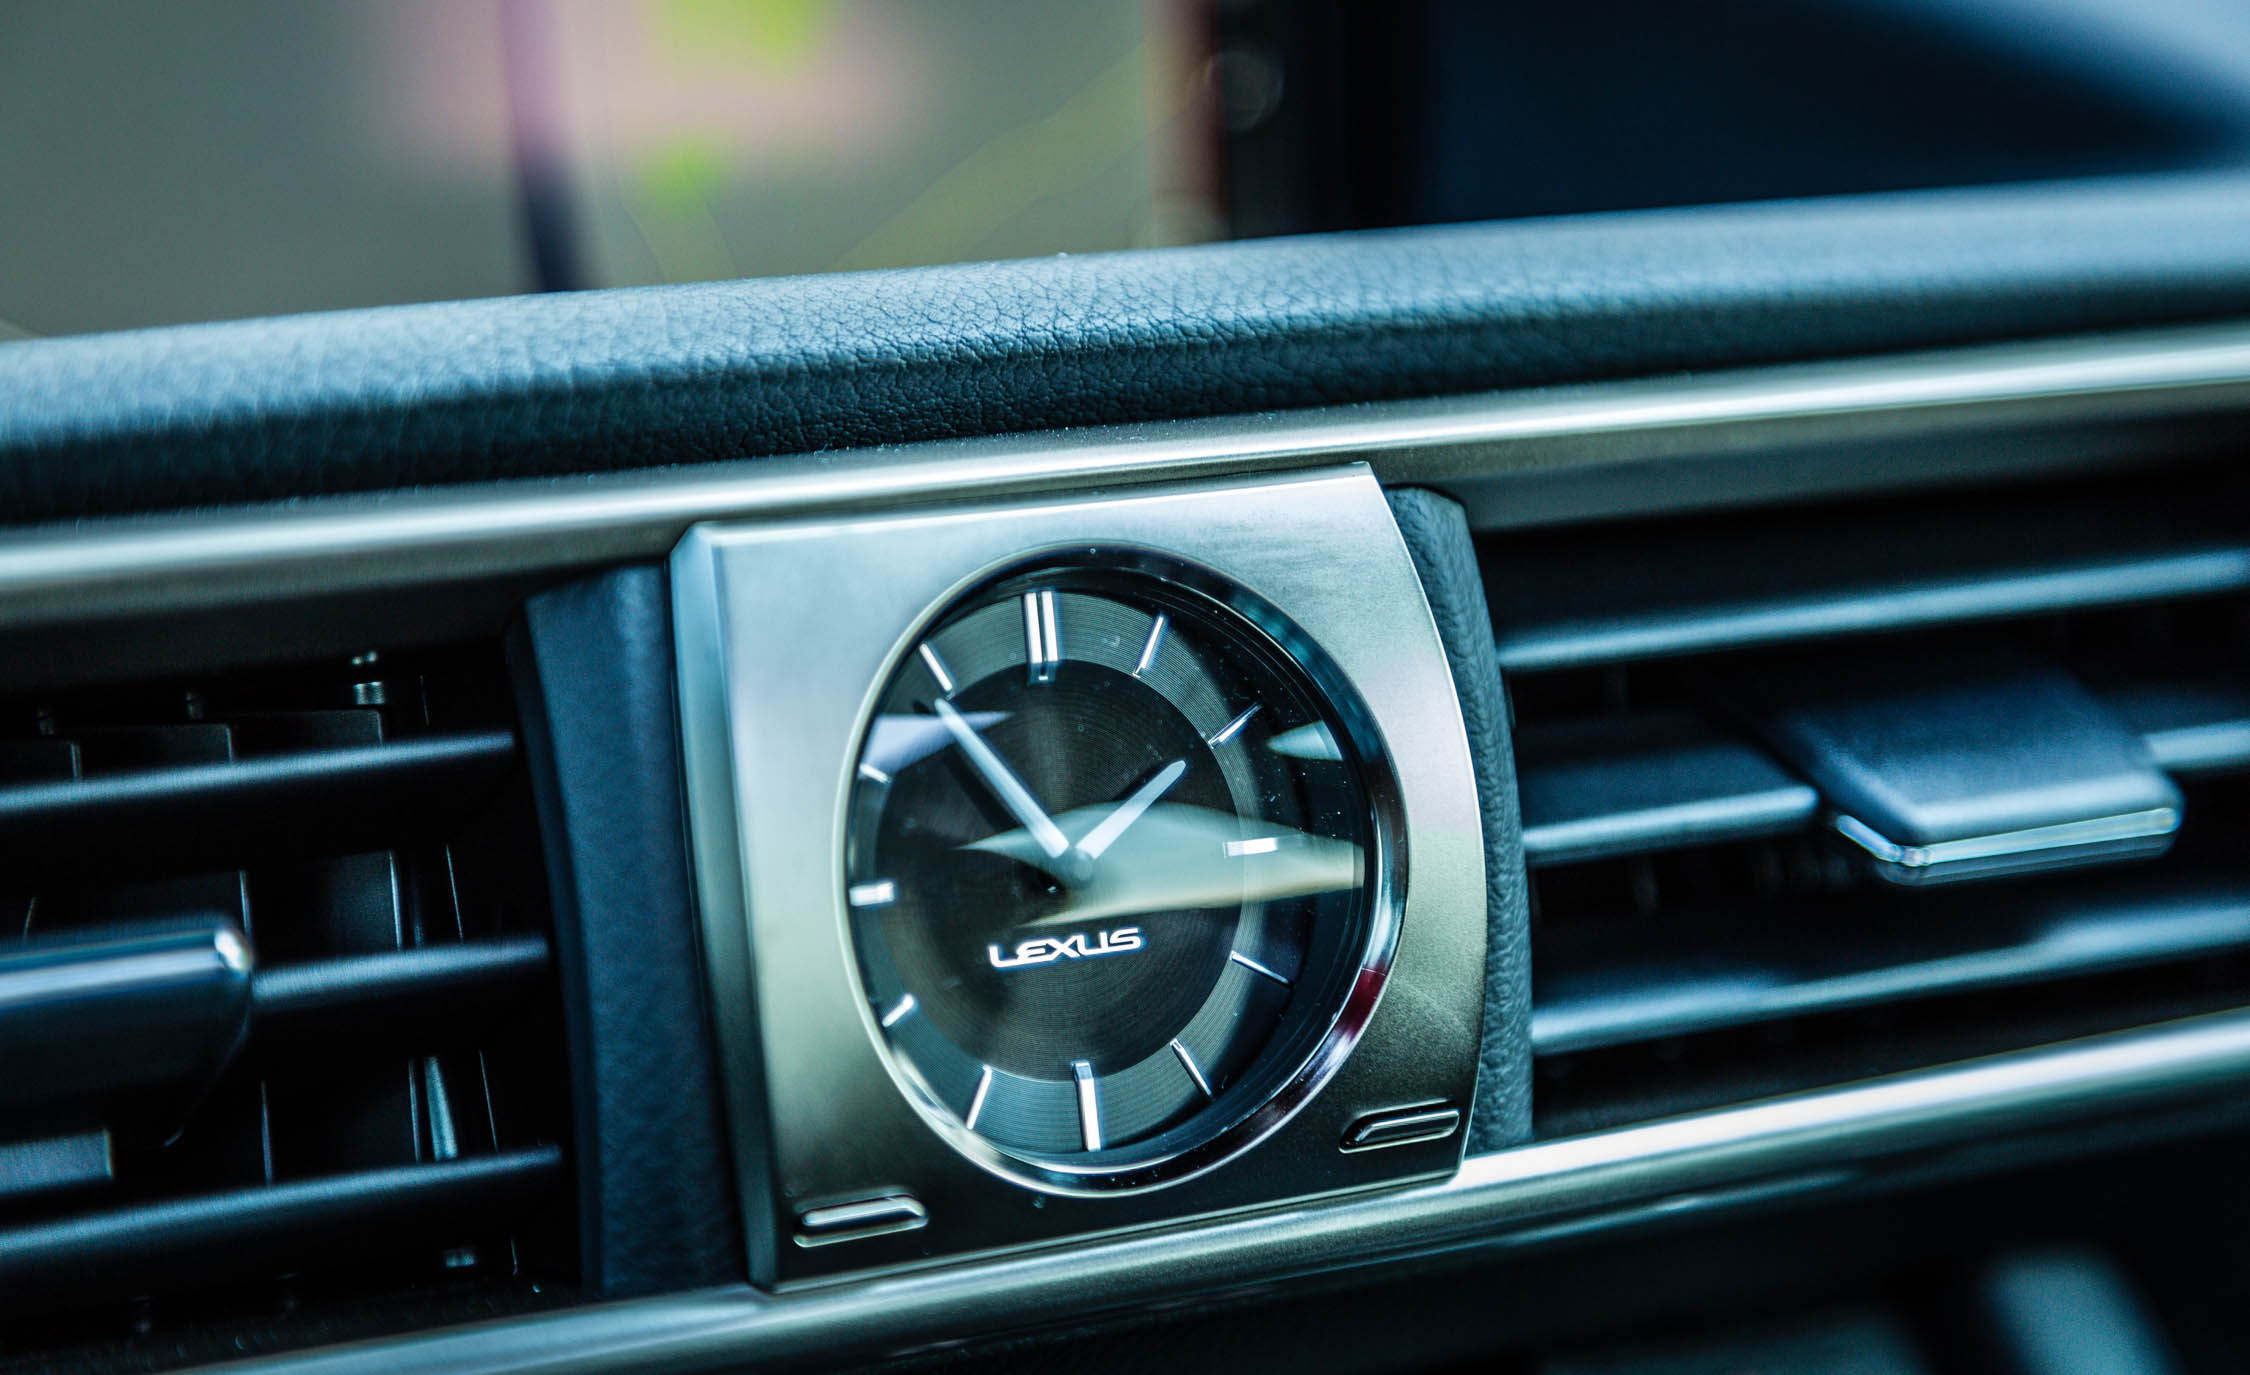 2017 Lexus IS 200t F Sport Interior View Dash Clock (View 24 of 29)